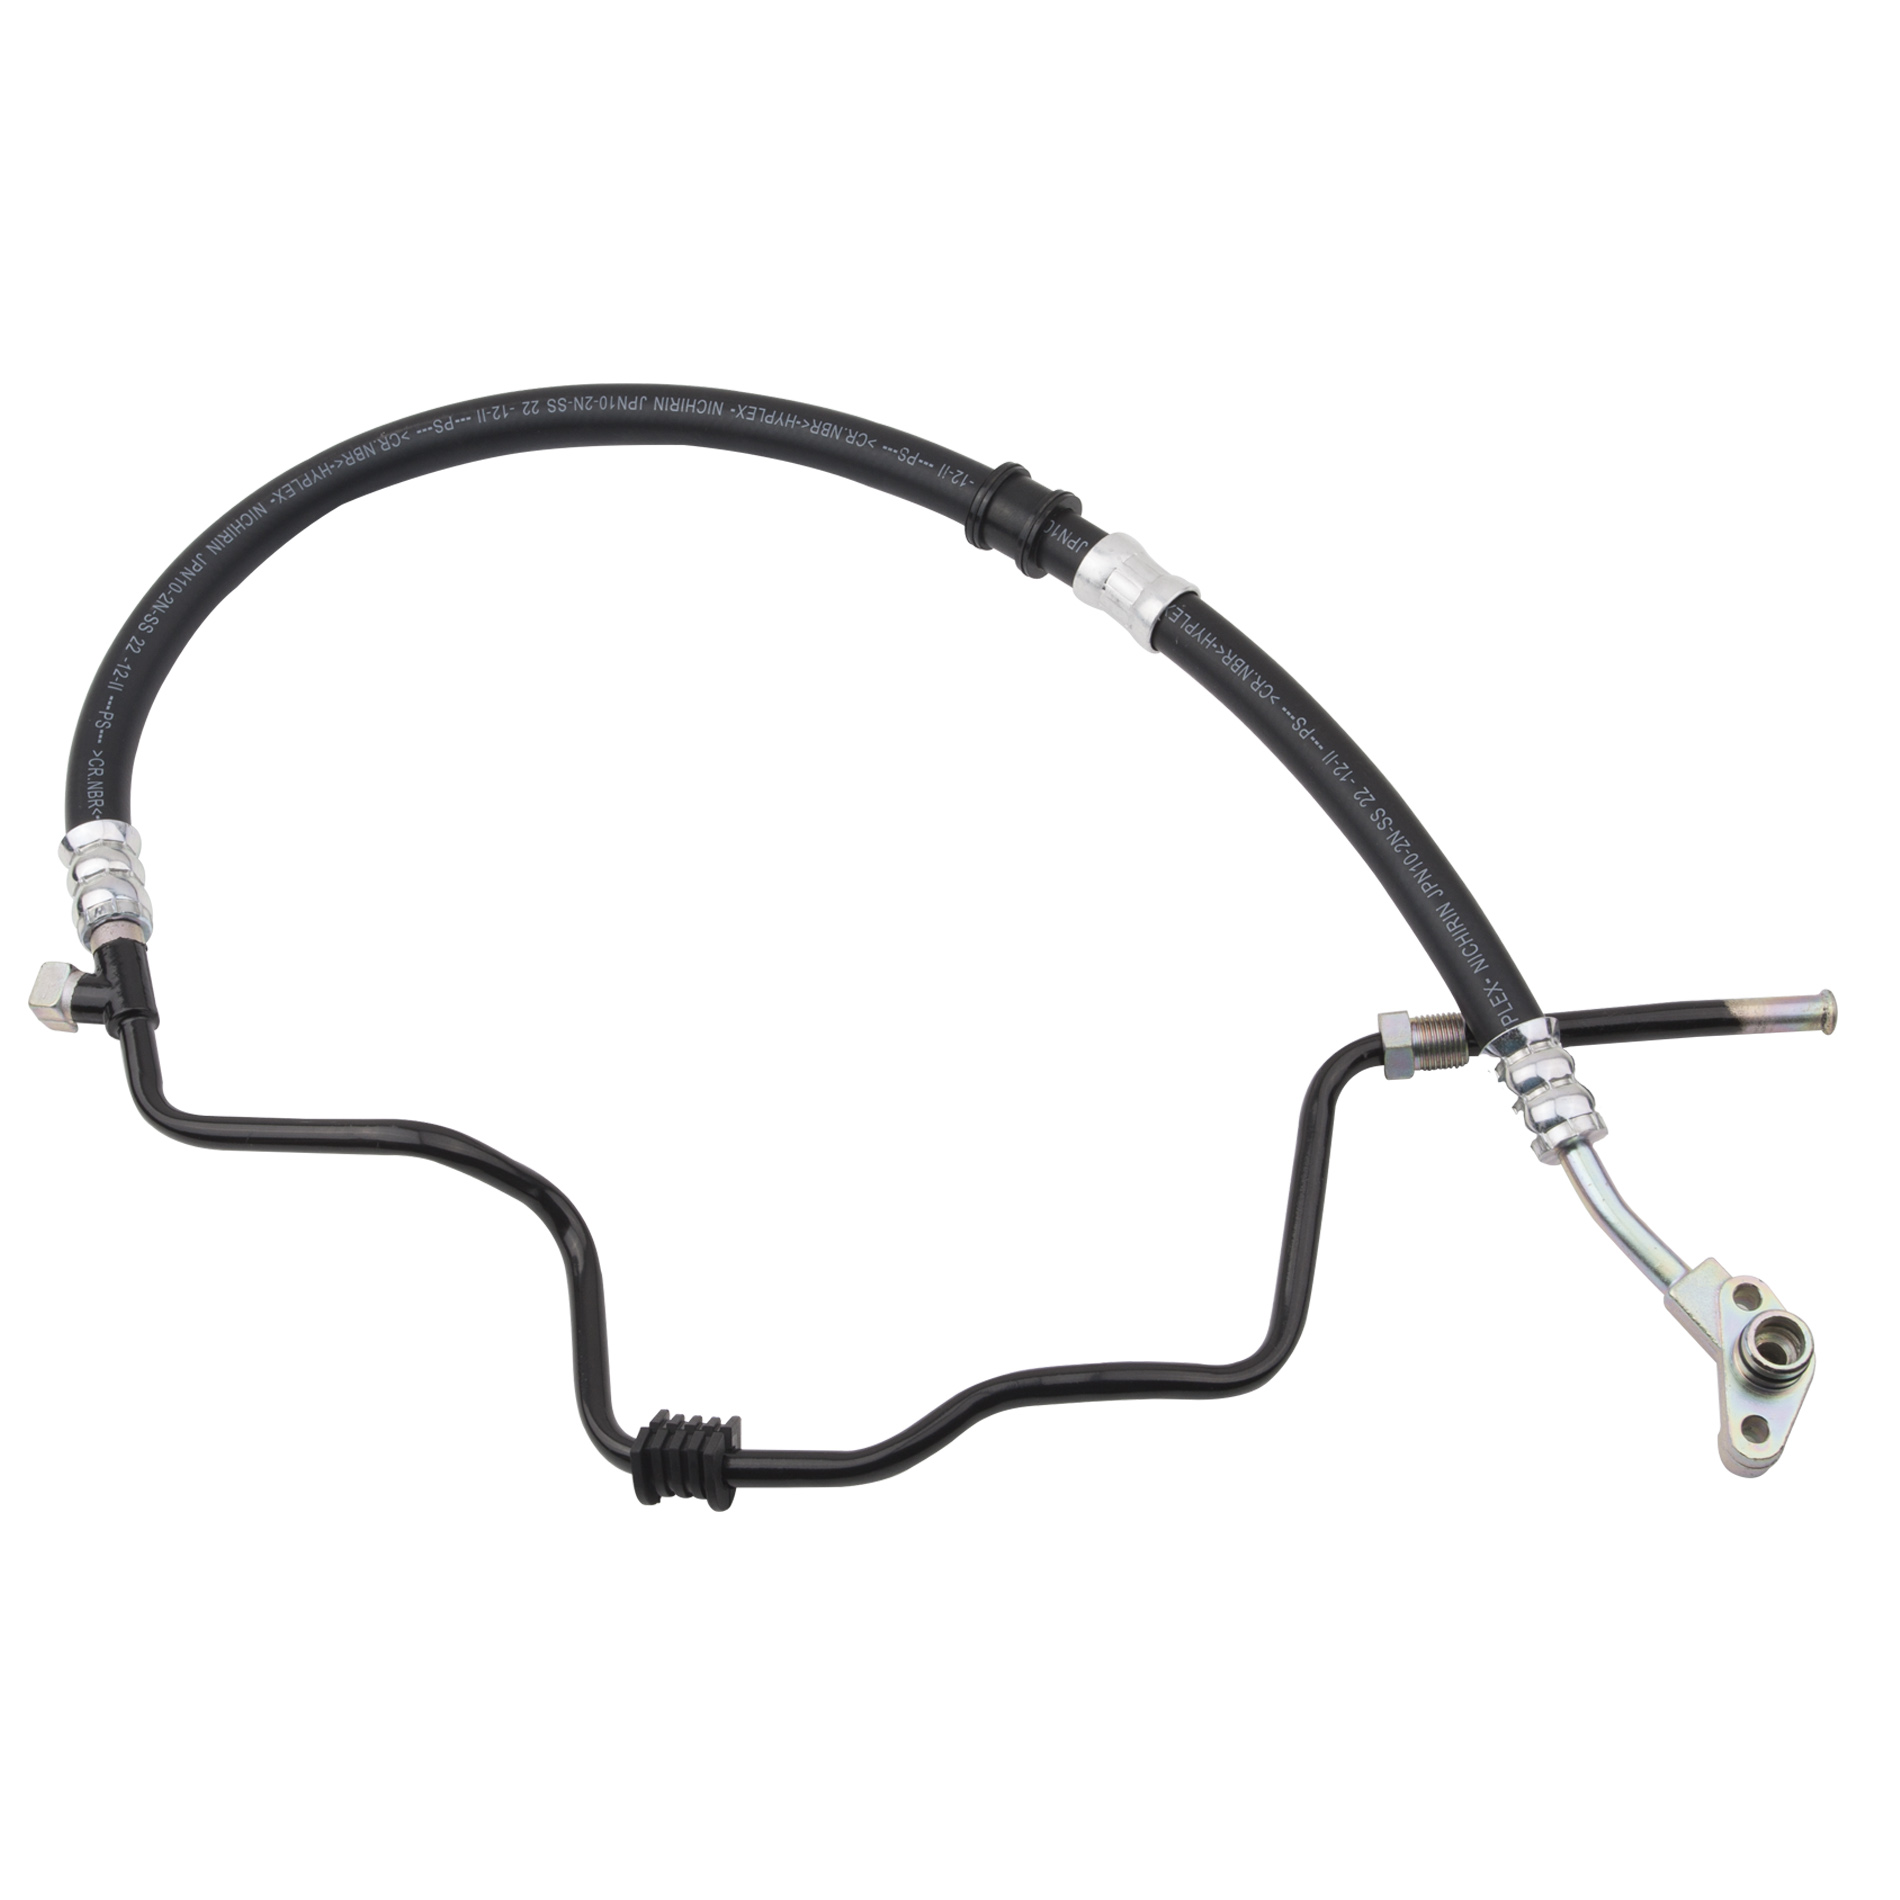 Power Steering Pressure Line Hose For New Acura MDX Honda